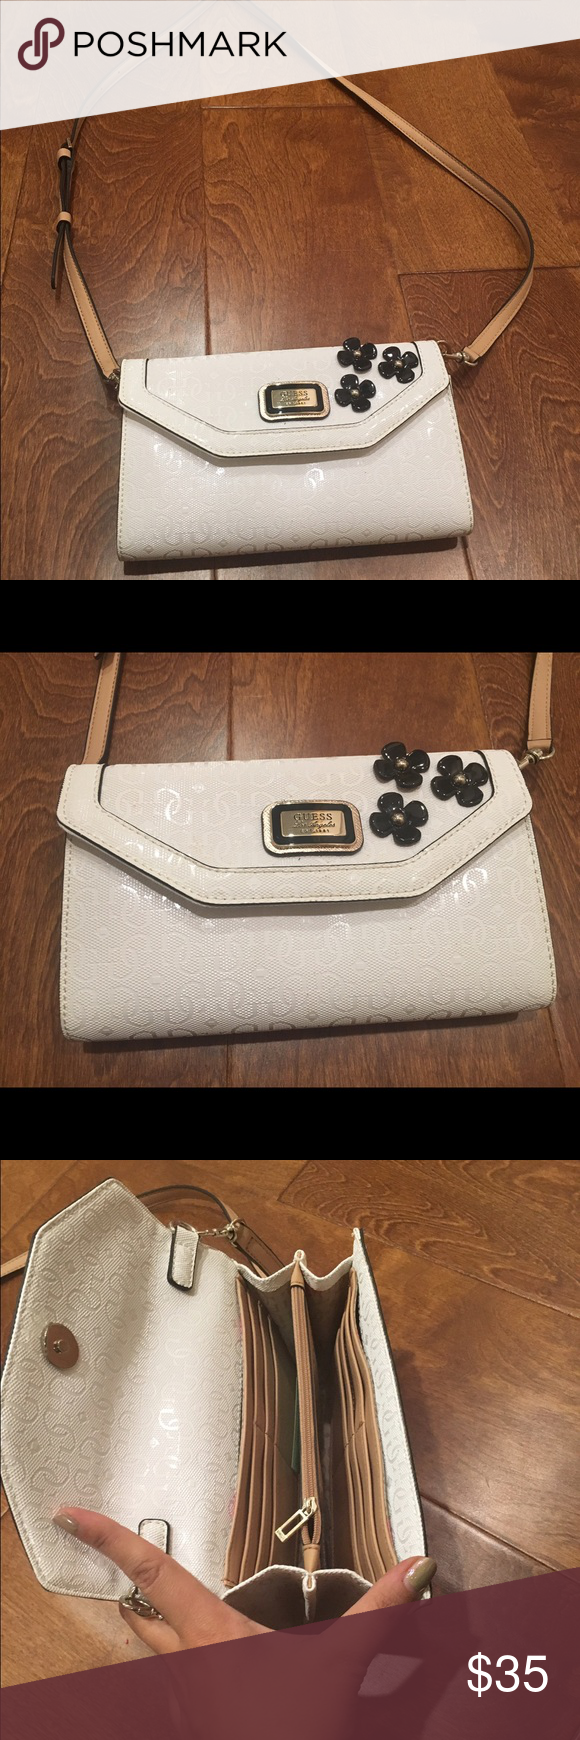 Black and White Guess Messenger Perfect bag for going out or shopping. Lots of compartments for storing credit cards, cash, lipgloss, phone. Cute black and gold flower detail. This cross body wasn't worn more than twice. Like brand new. Guess Bags Crossbody Bags